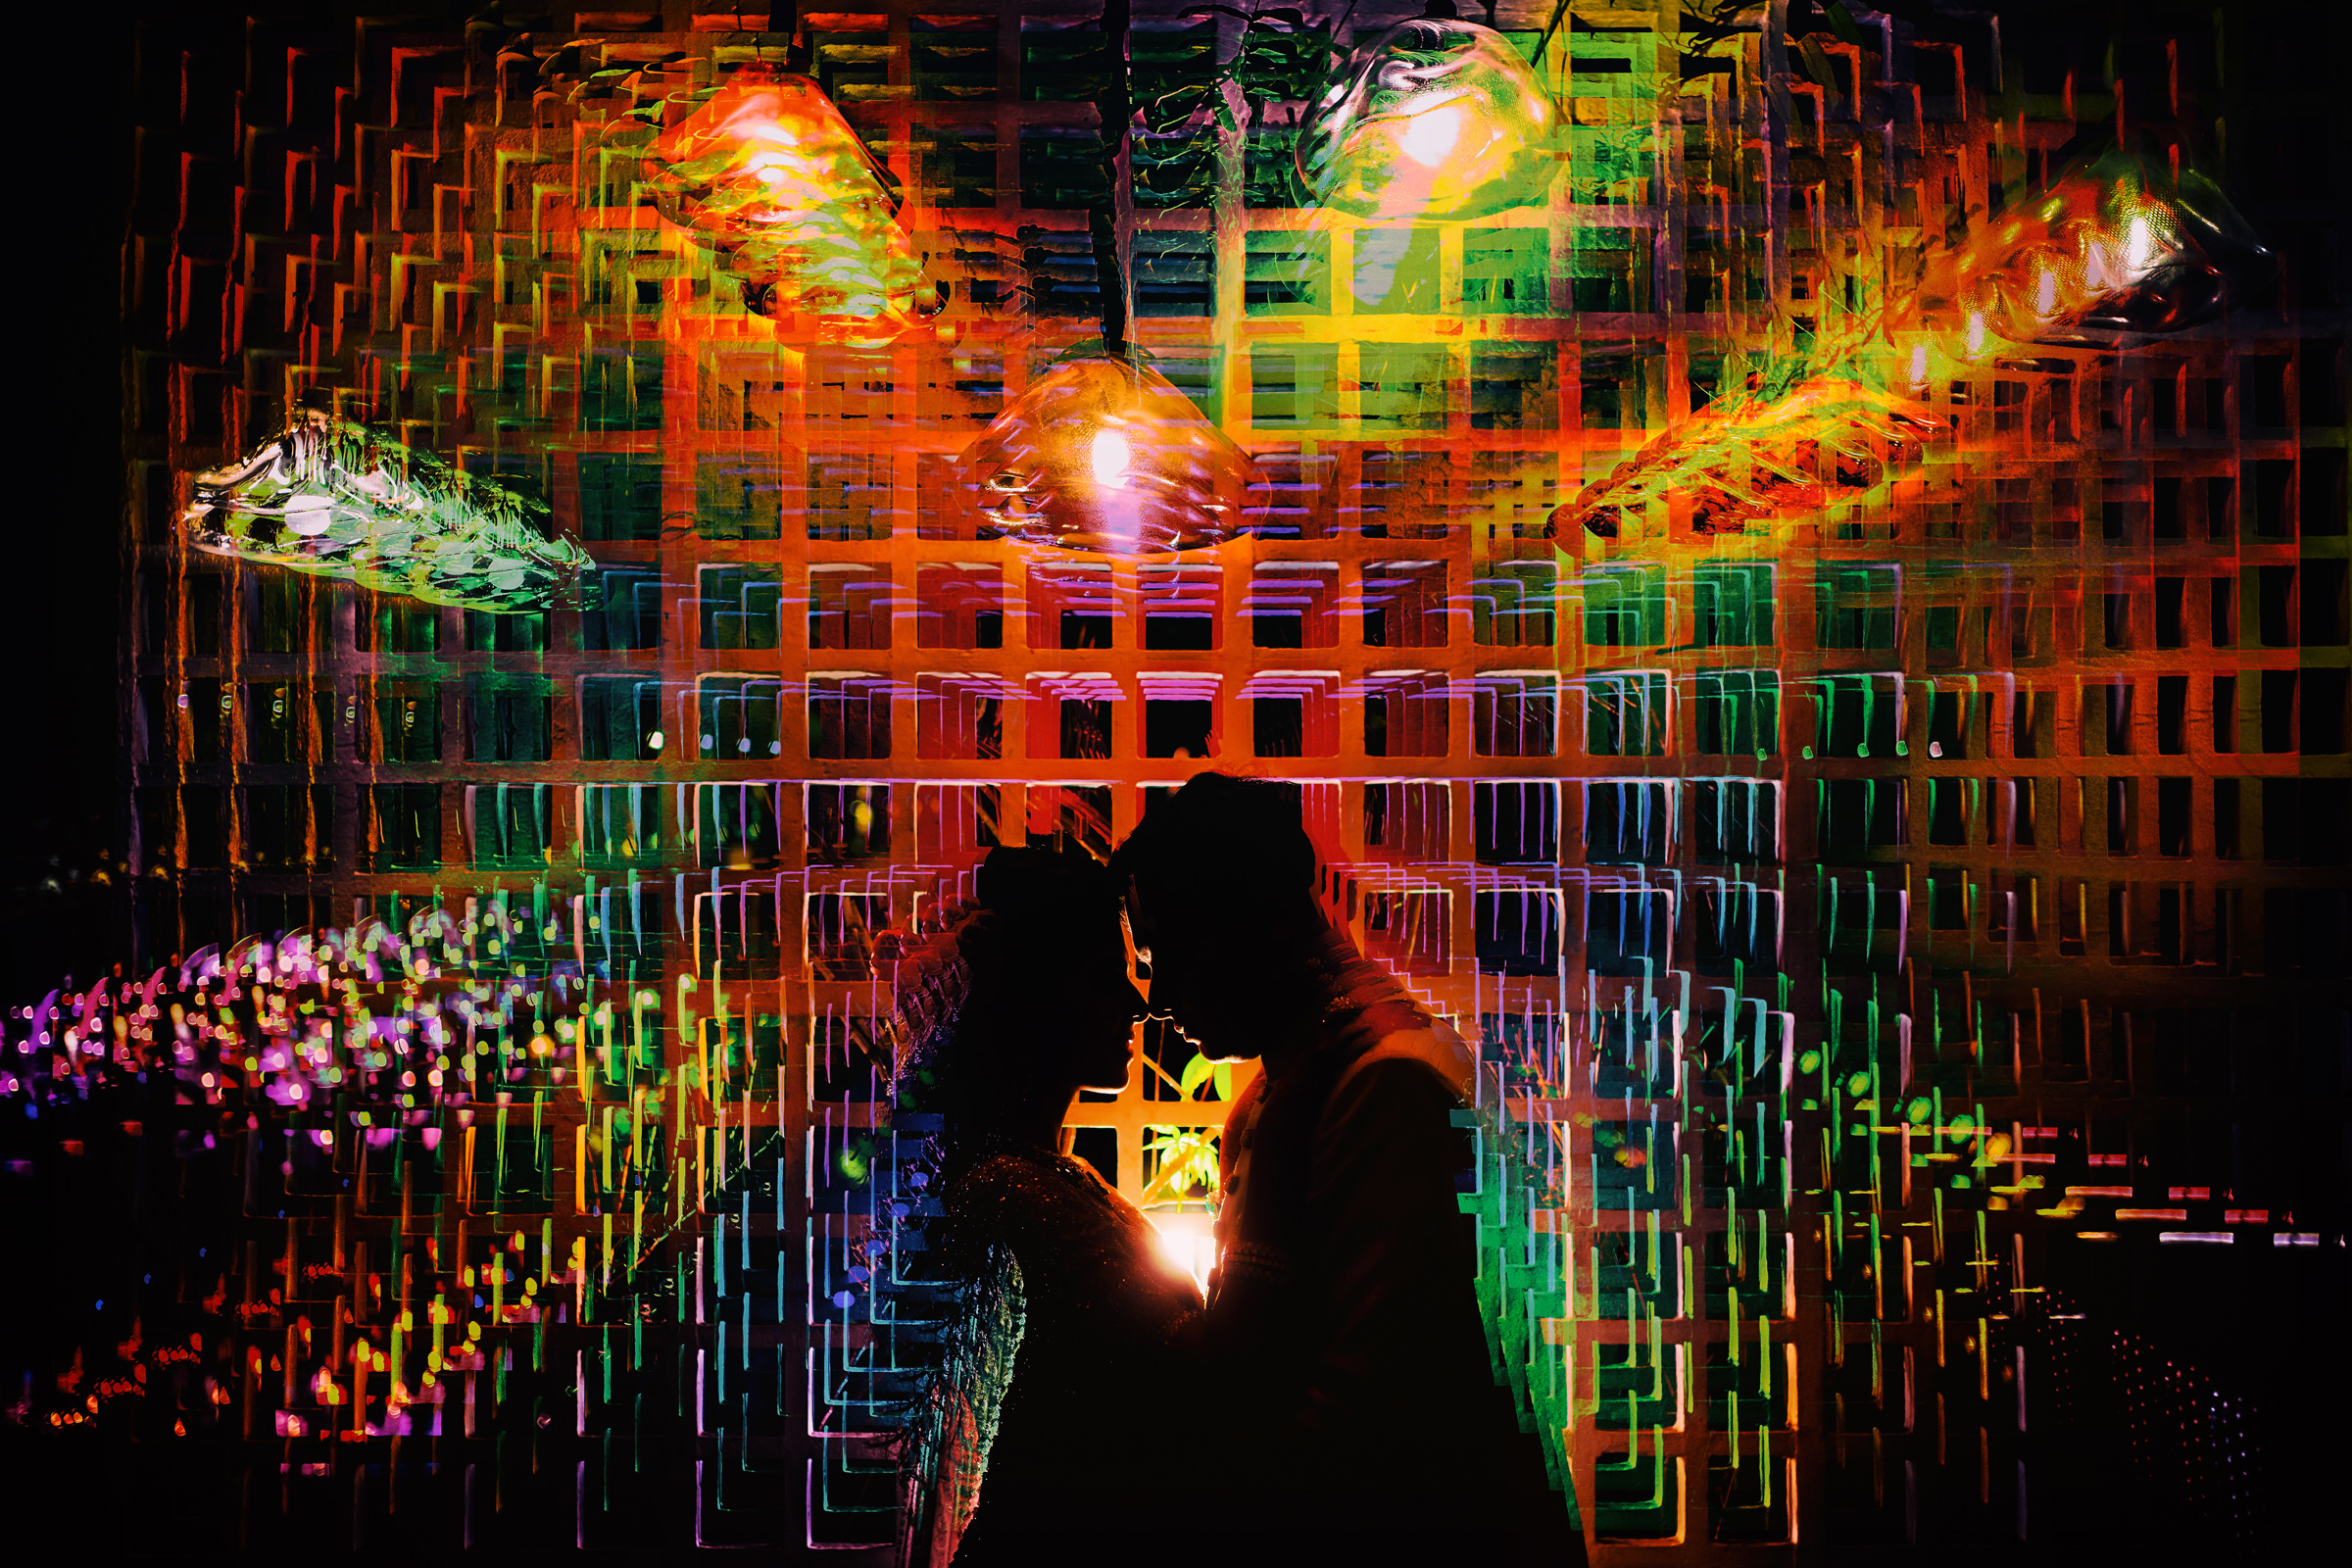 Colorful creative silhouette against geometric lights - photo by Tej Nookala Photography